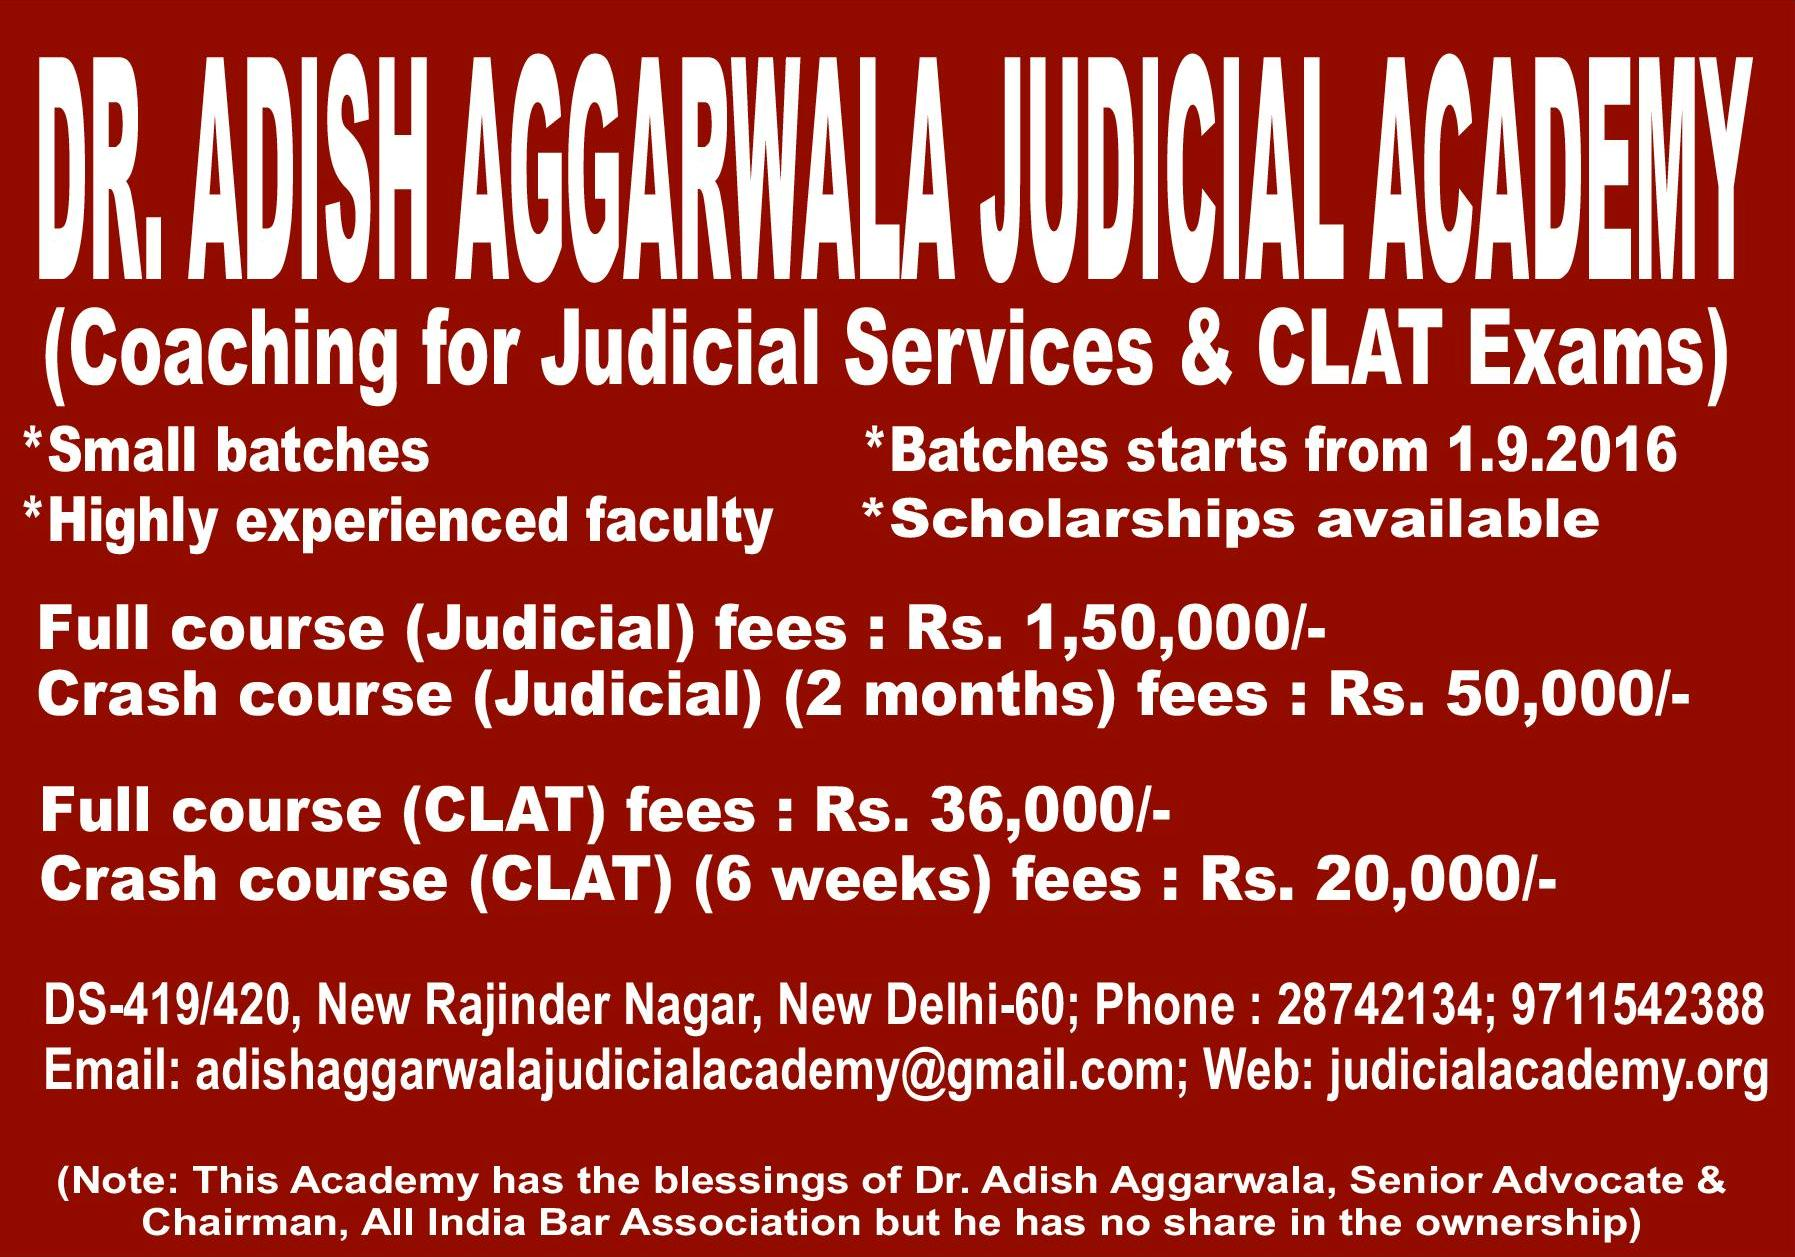 JOB POST: Teaching Faculty @ Dr. Adish Aggarwala Judicial Academy Delhi